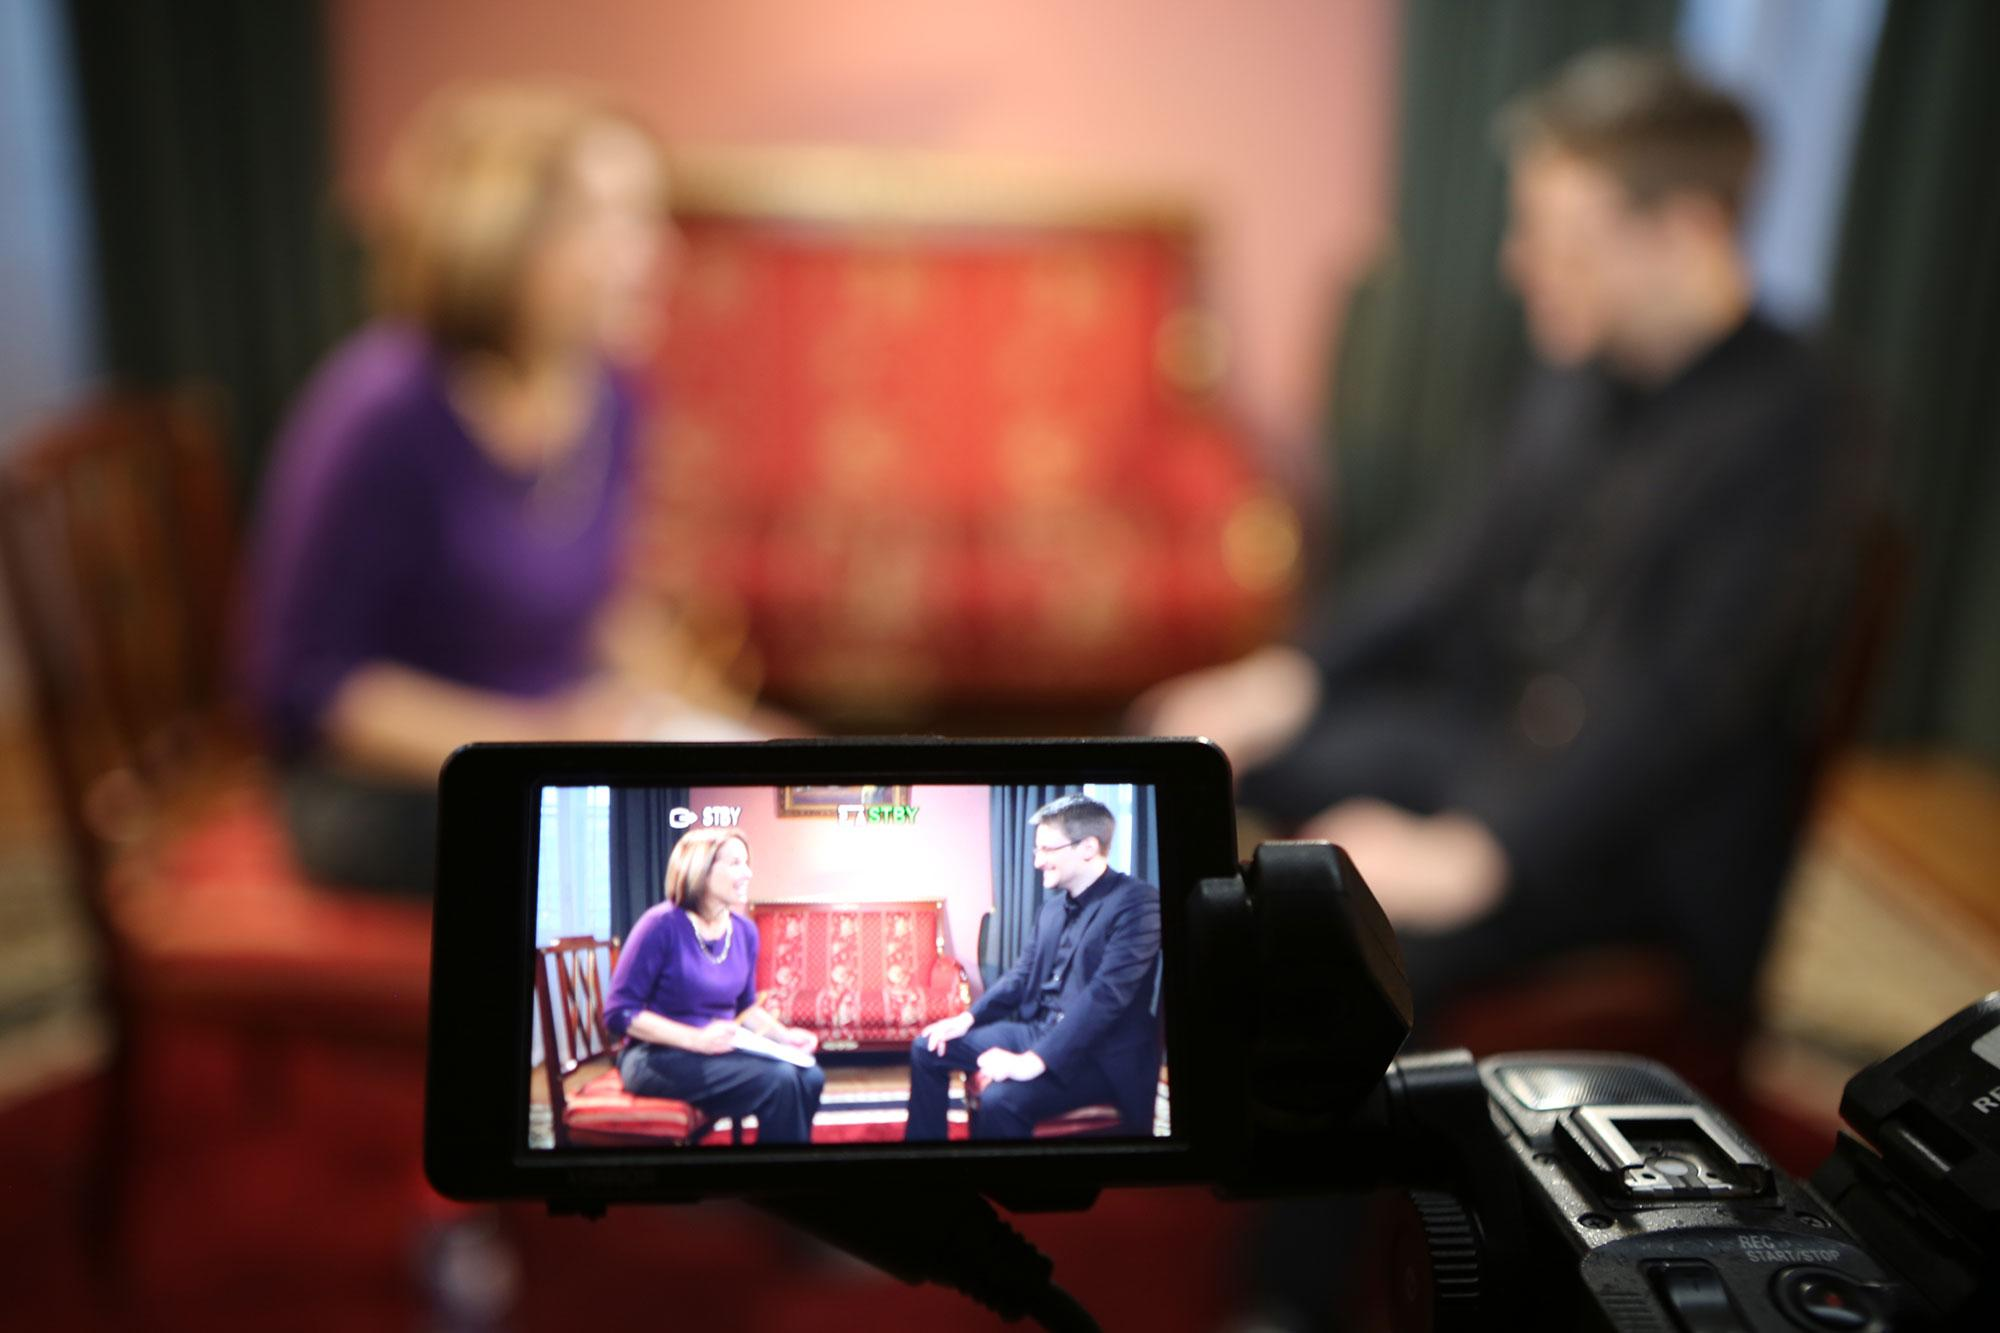 <p>The video display is seen as Yahoo Global News Anchor Katie Couric interviews Edward Snowden in Moscow on December 3, 2016. (Photo: Brad Williams/Yahoo News) </p>